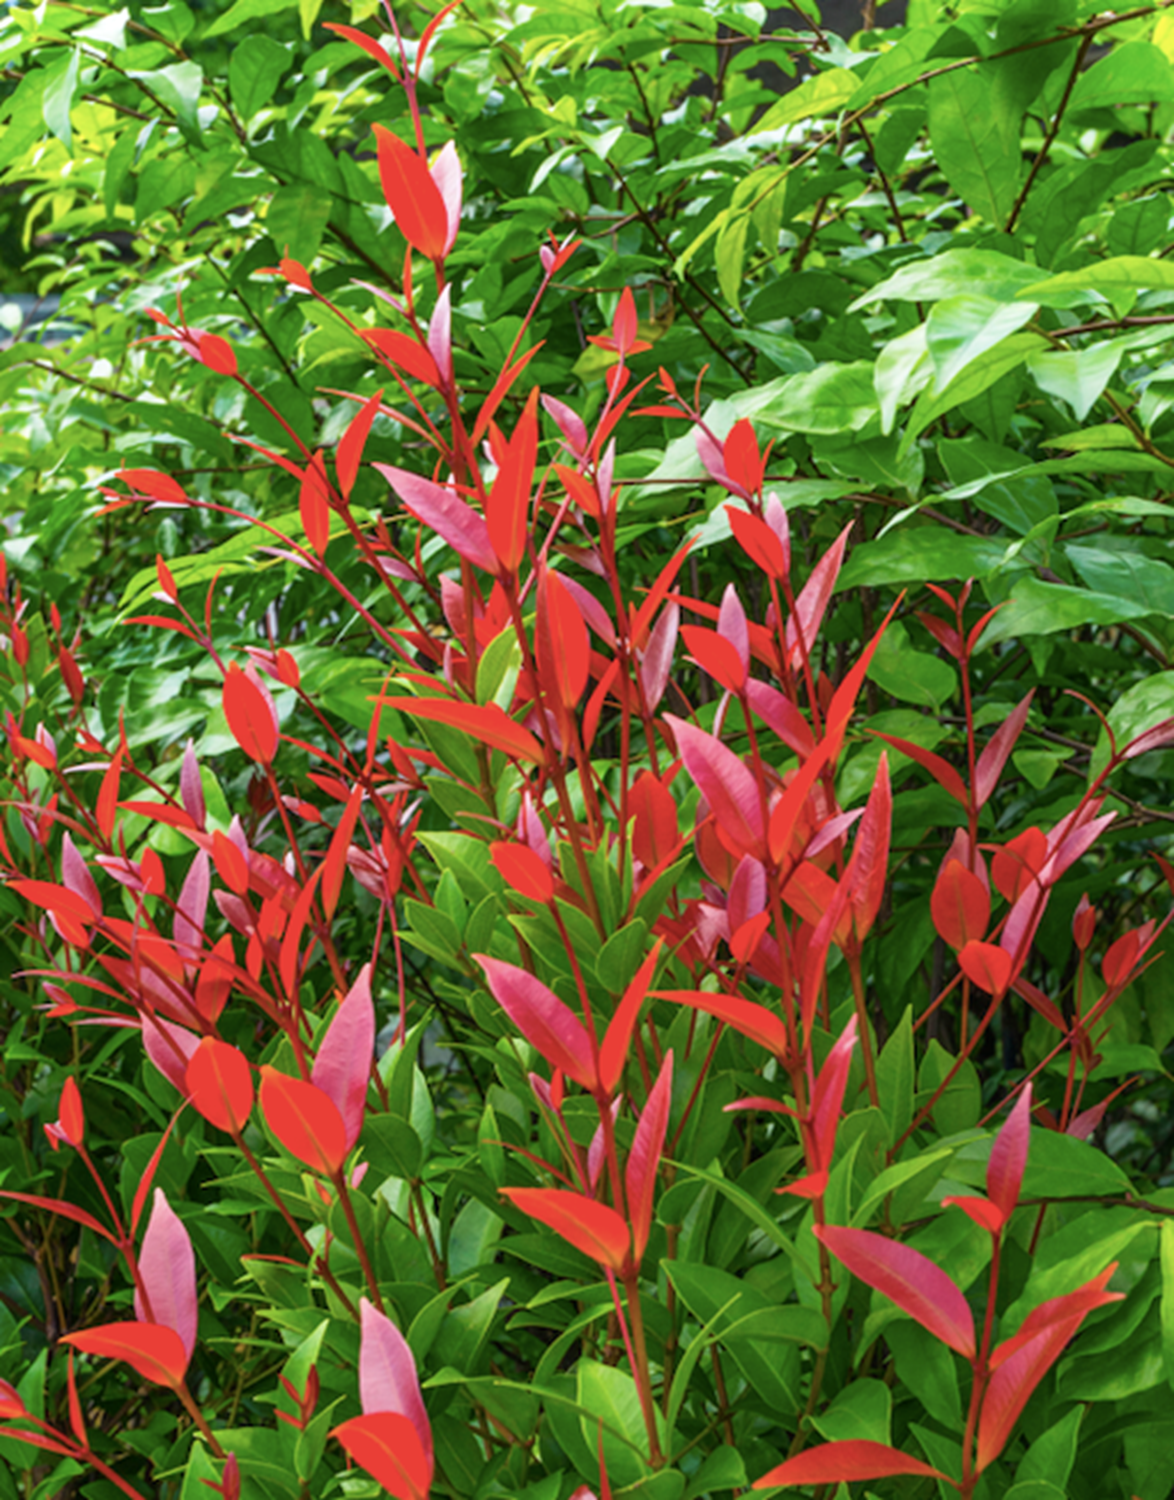 Lilly pillies produce foliage in various colours from lush green to gold and crimson red.